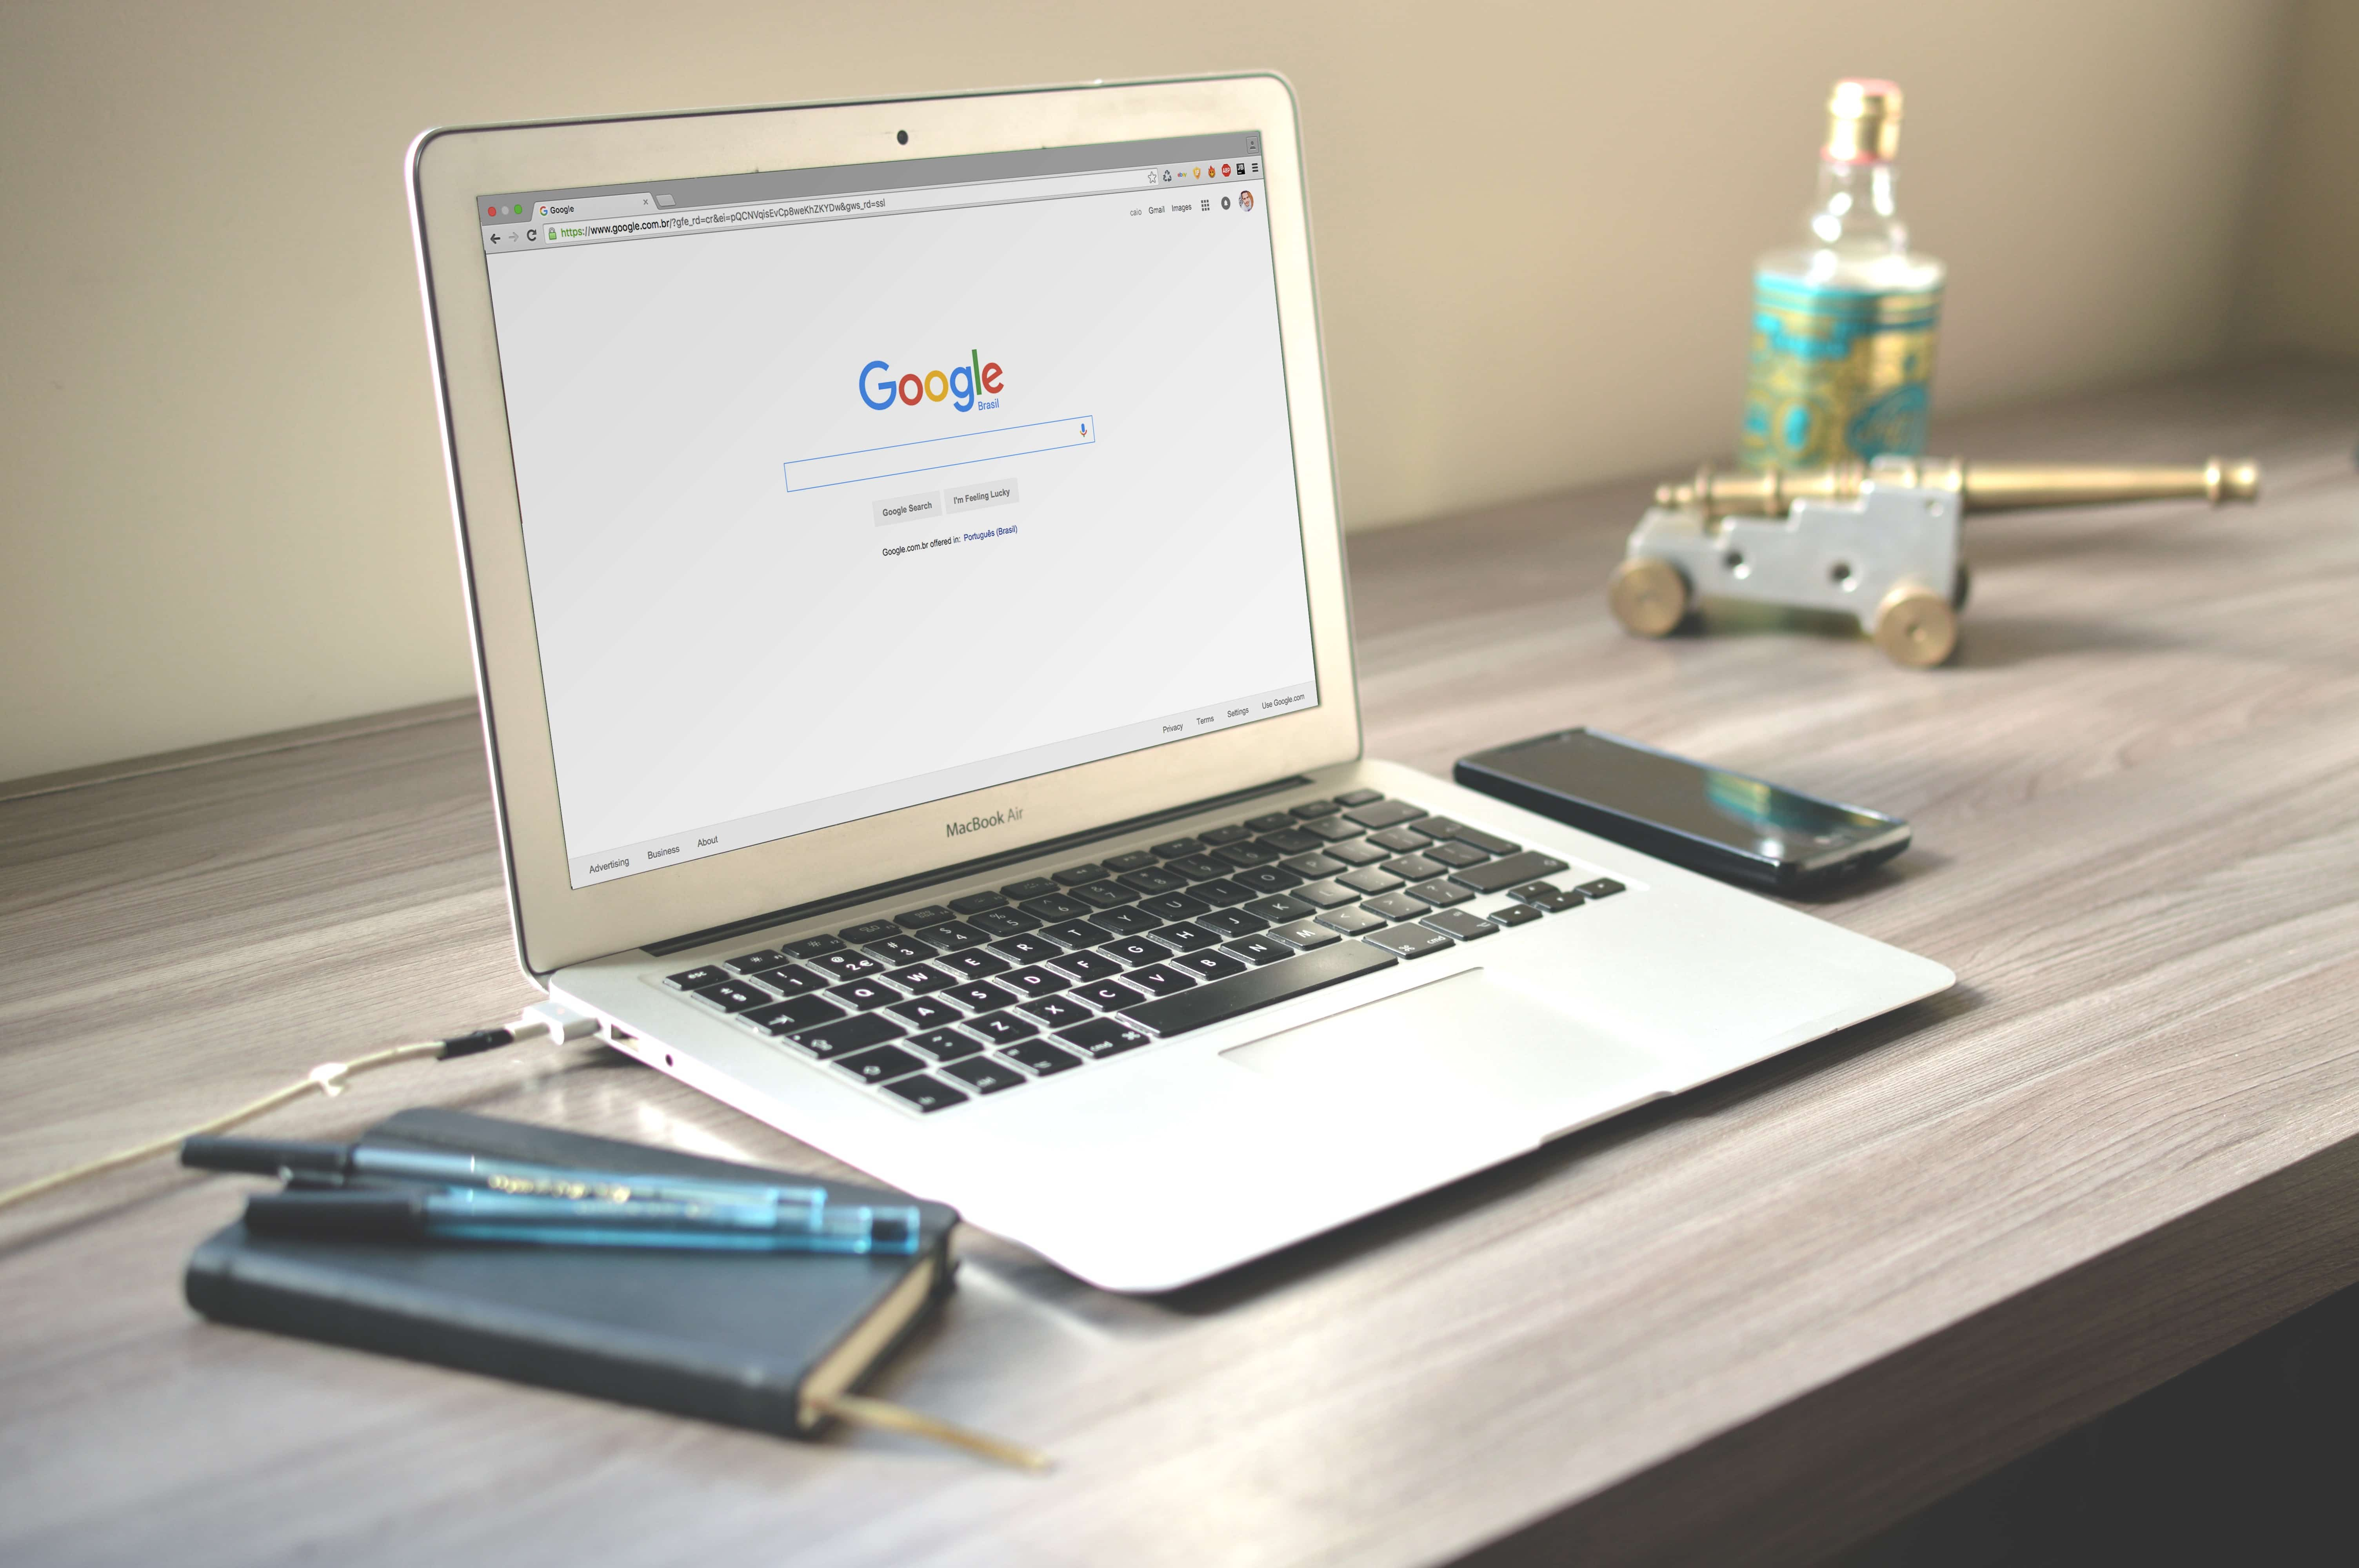 Optimising product content for search engines will help customers find the items they are looking for.